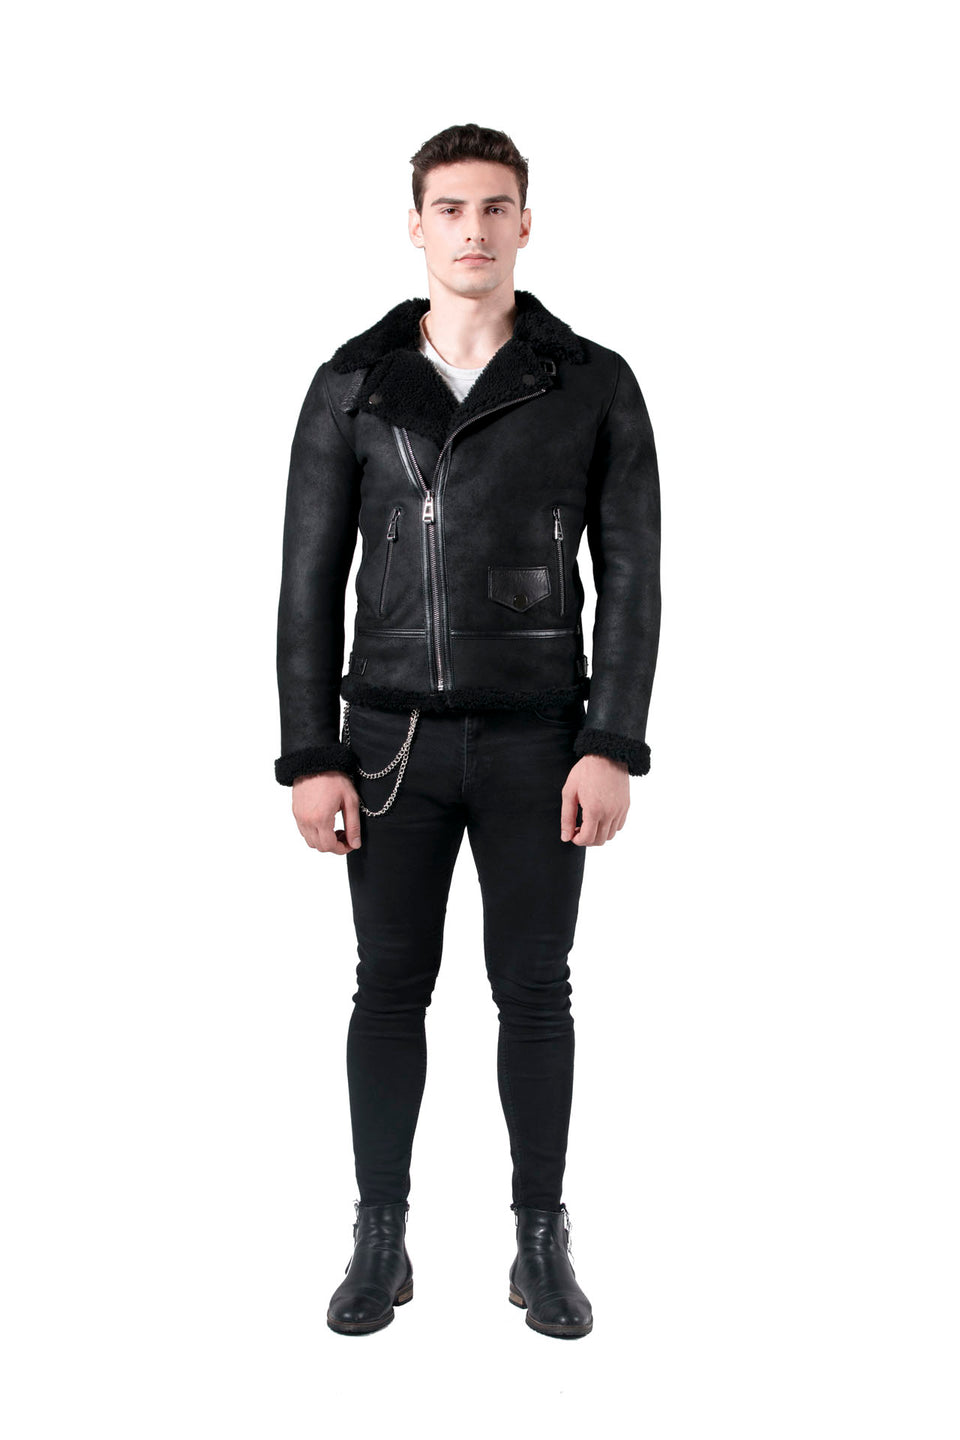 Lance - Men's Black Shearling Jacket 2020